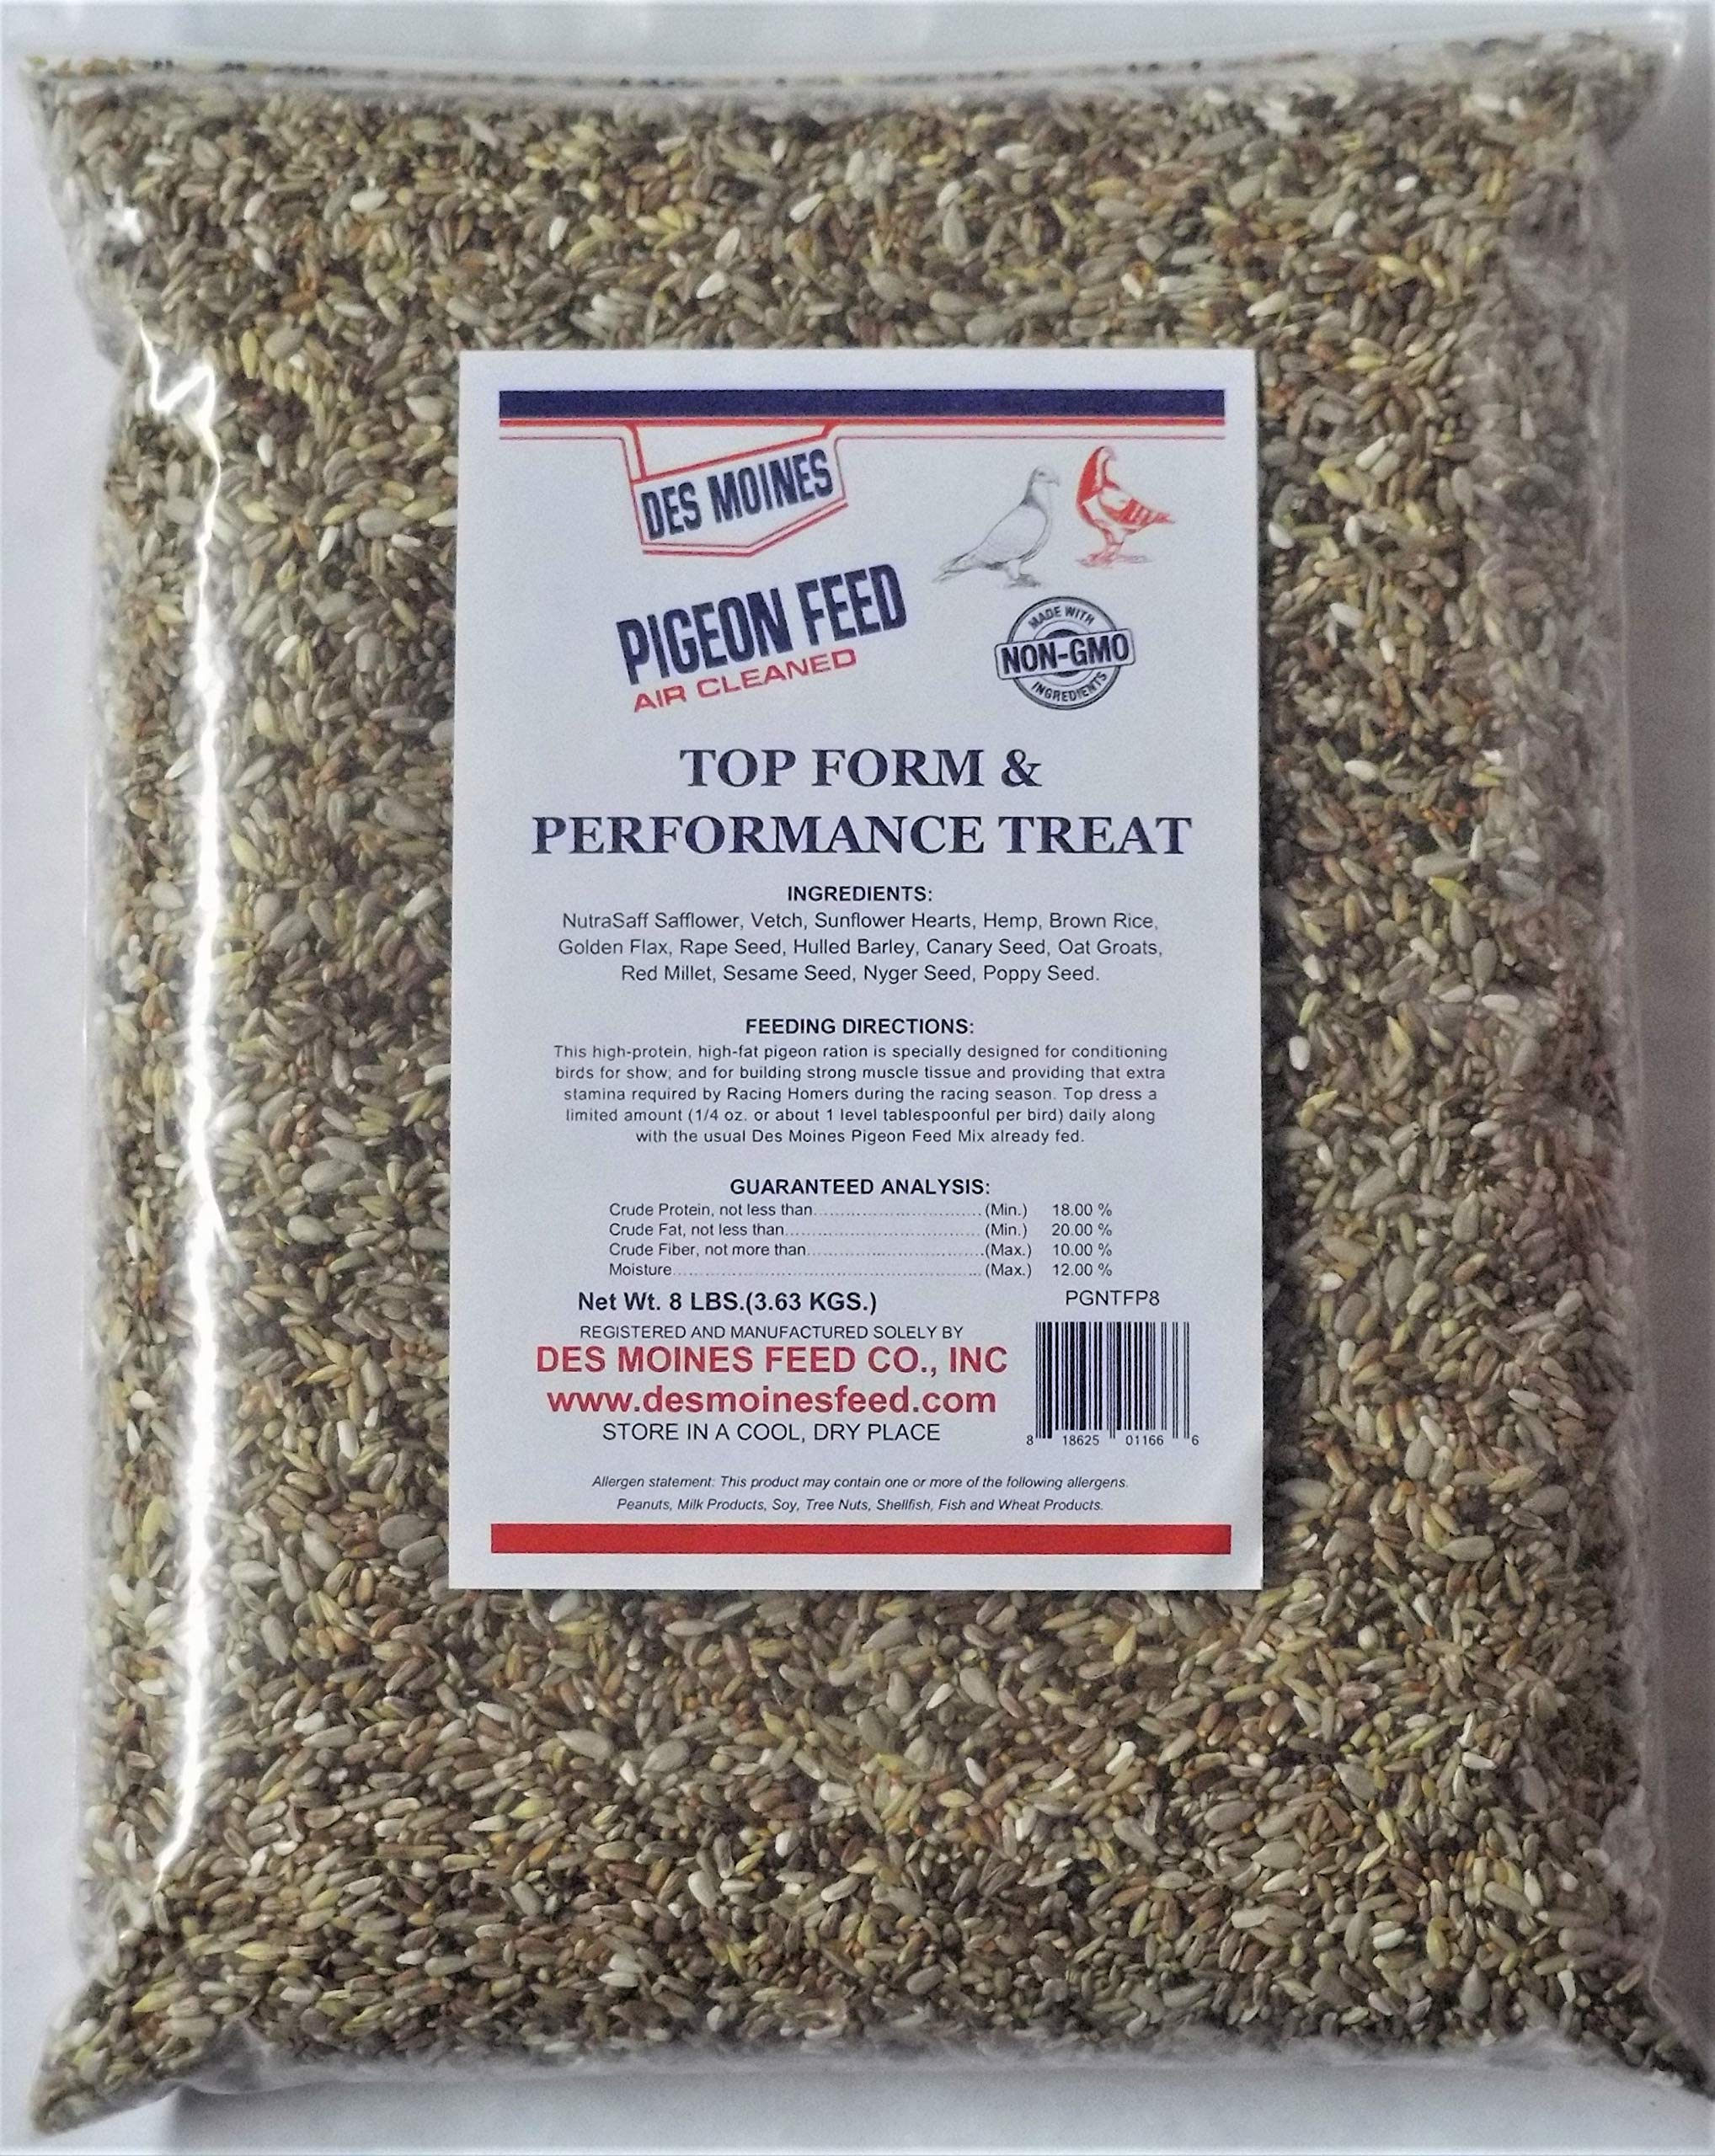 Top Form & Performance Pigeon Treat (18%) 8 lbs by Des Moines Pigeon Feed